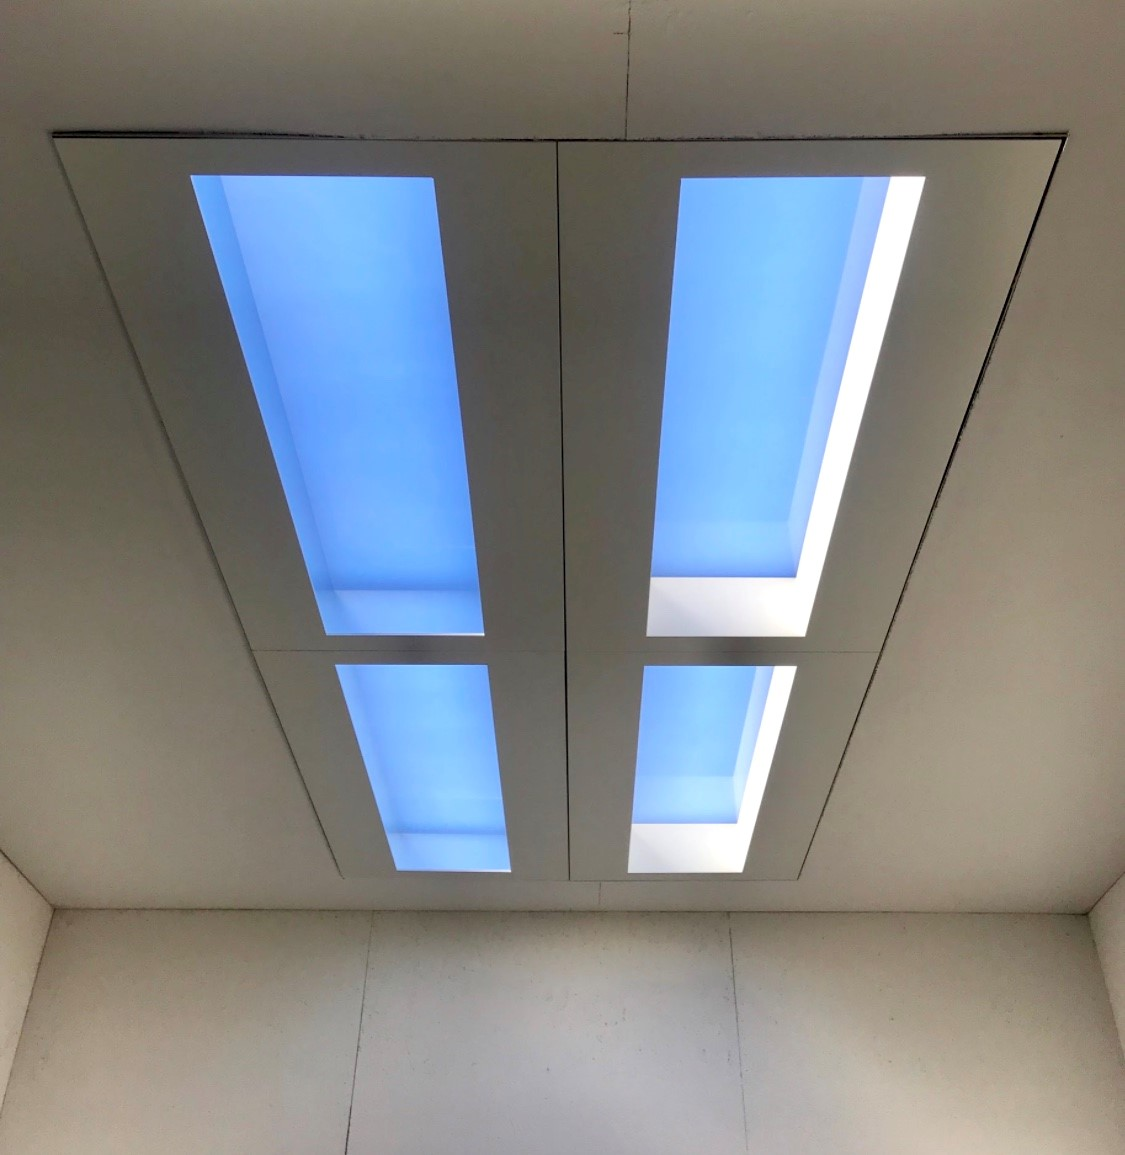 Coelux Skylight